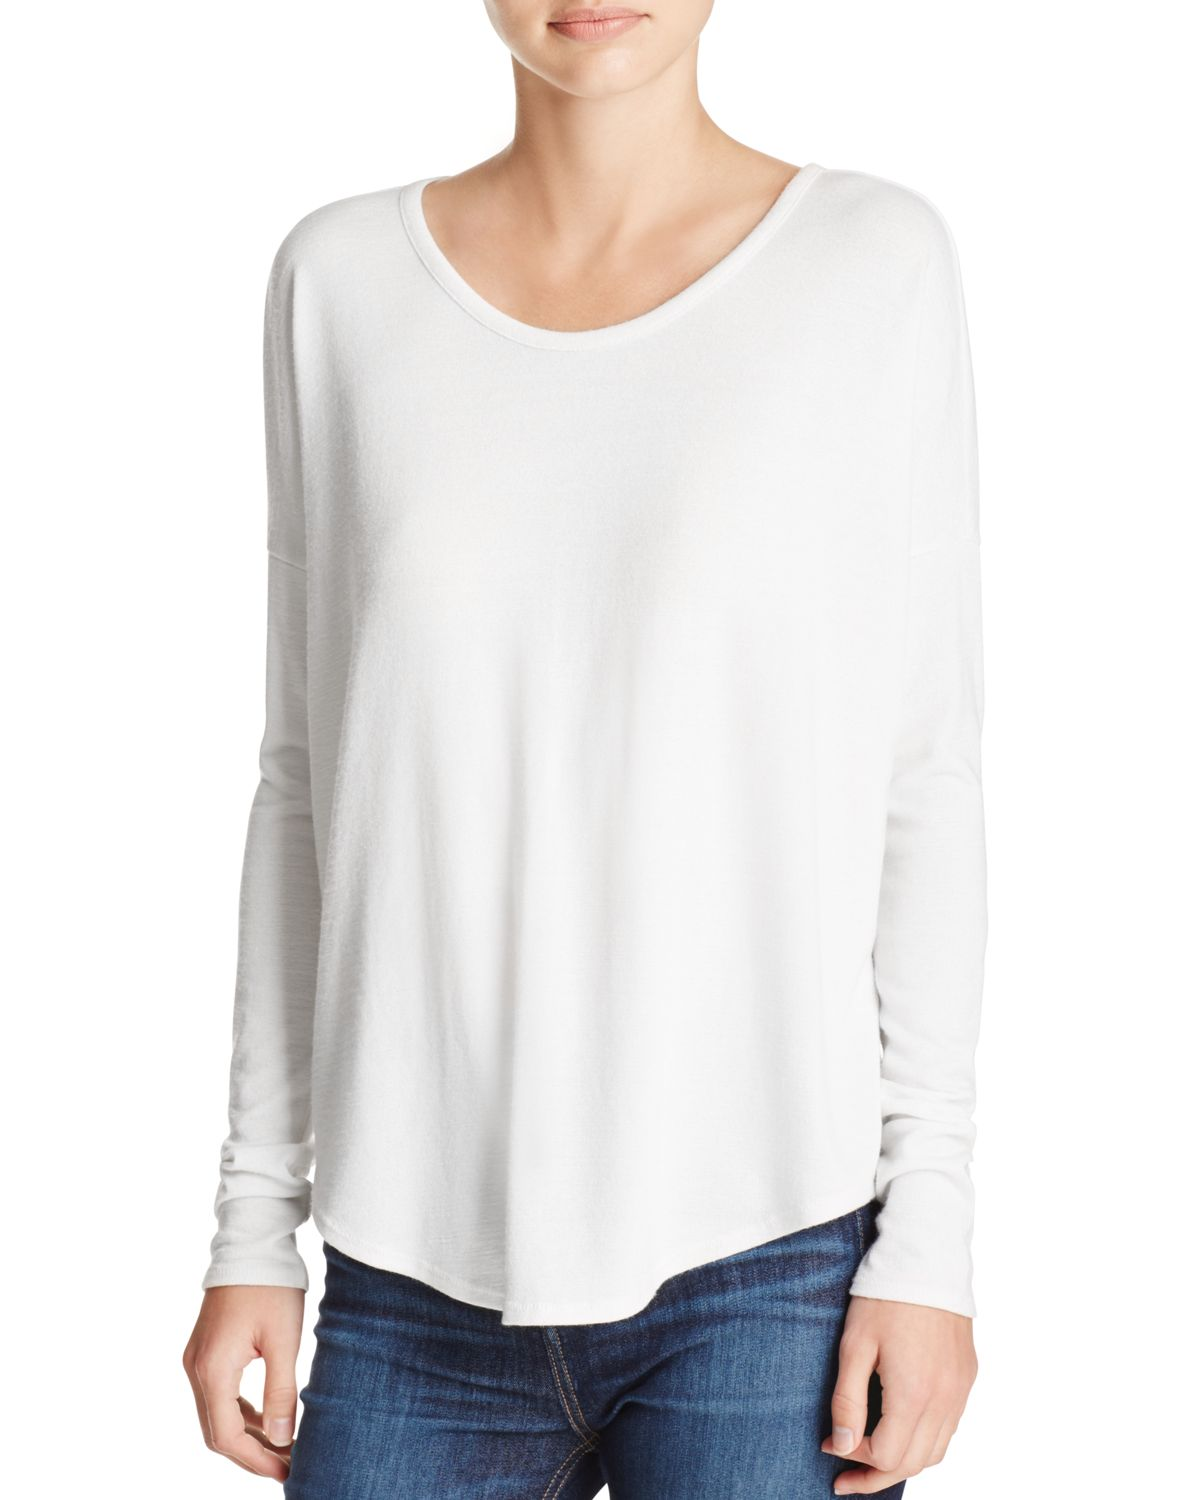 Hudson Long Sleeve Tee by Rag & Bone/Jean